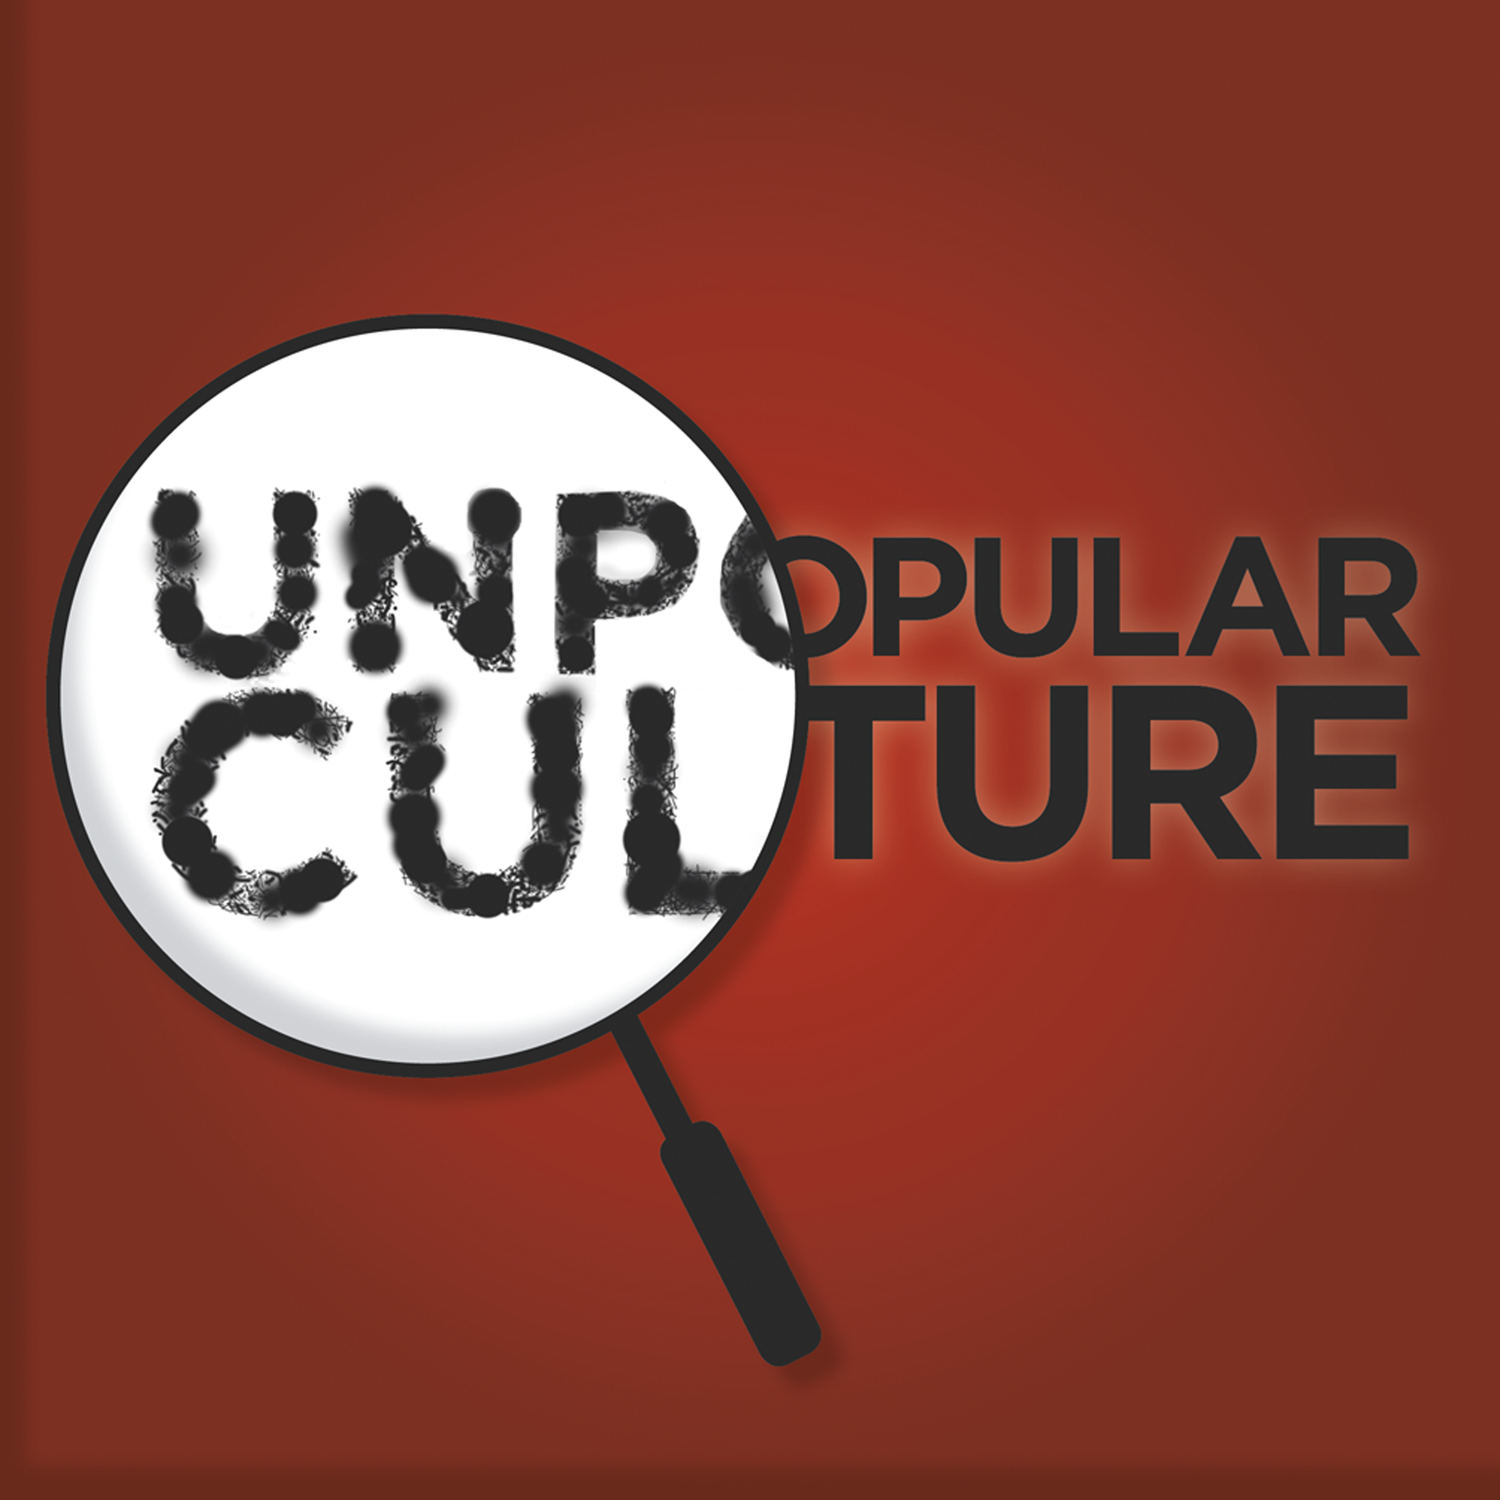 generation gaps truths and stereotypes of millenials gen xers unpopular culture a psychology and culture podcast